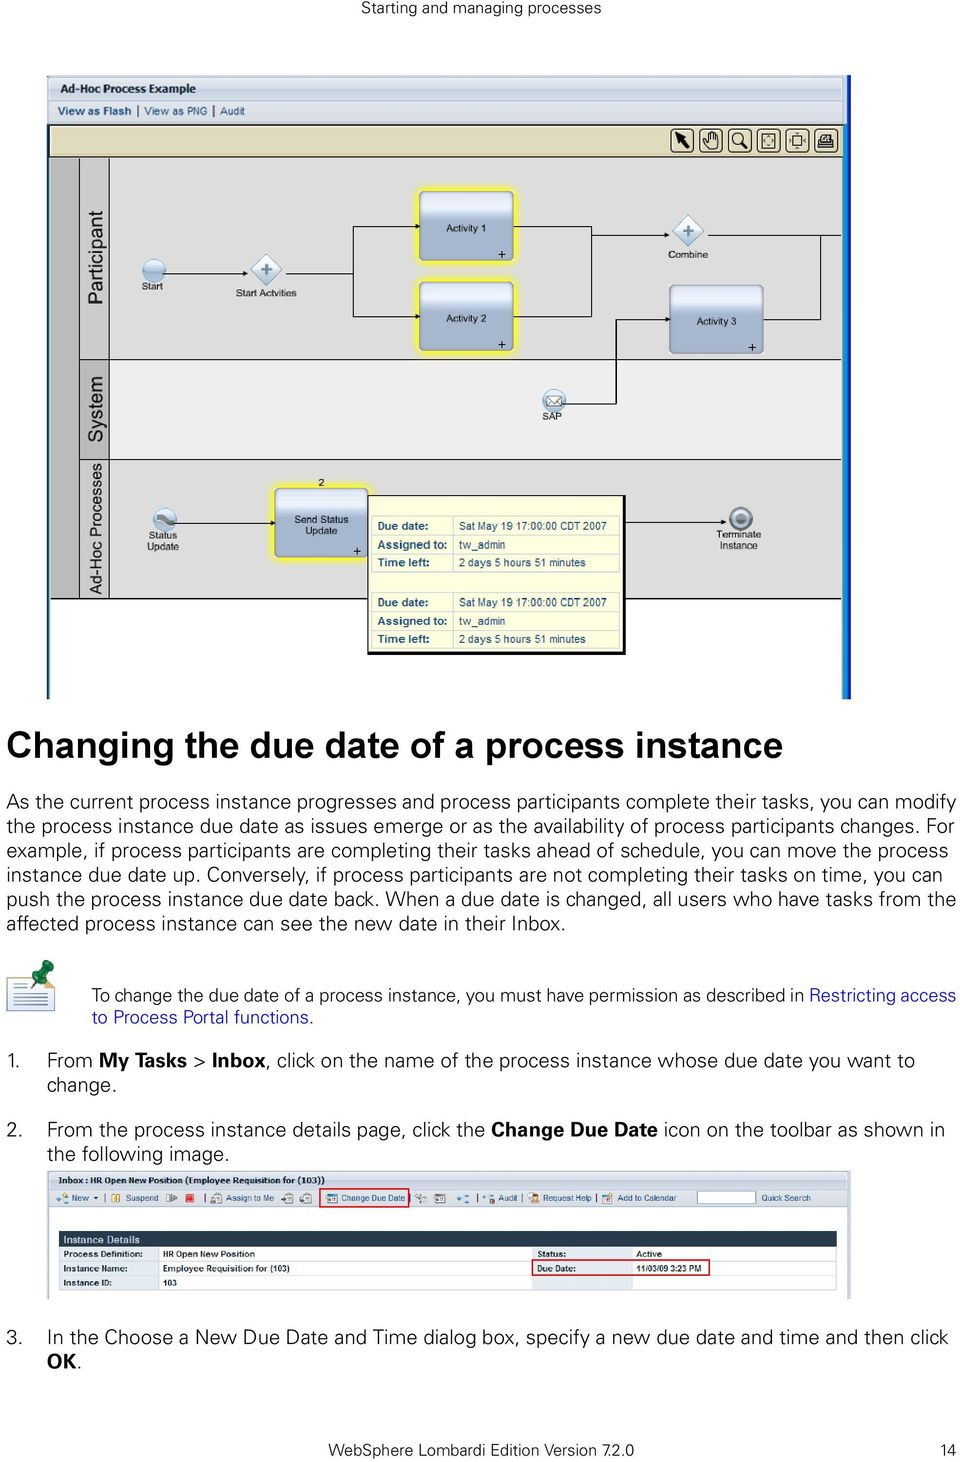 For example, if process participants are completing their tasks ahead of schedule, you can move the process instance due date up.